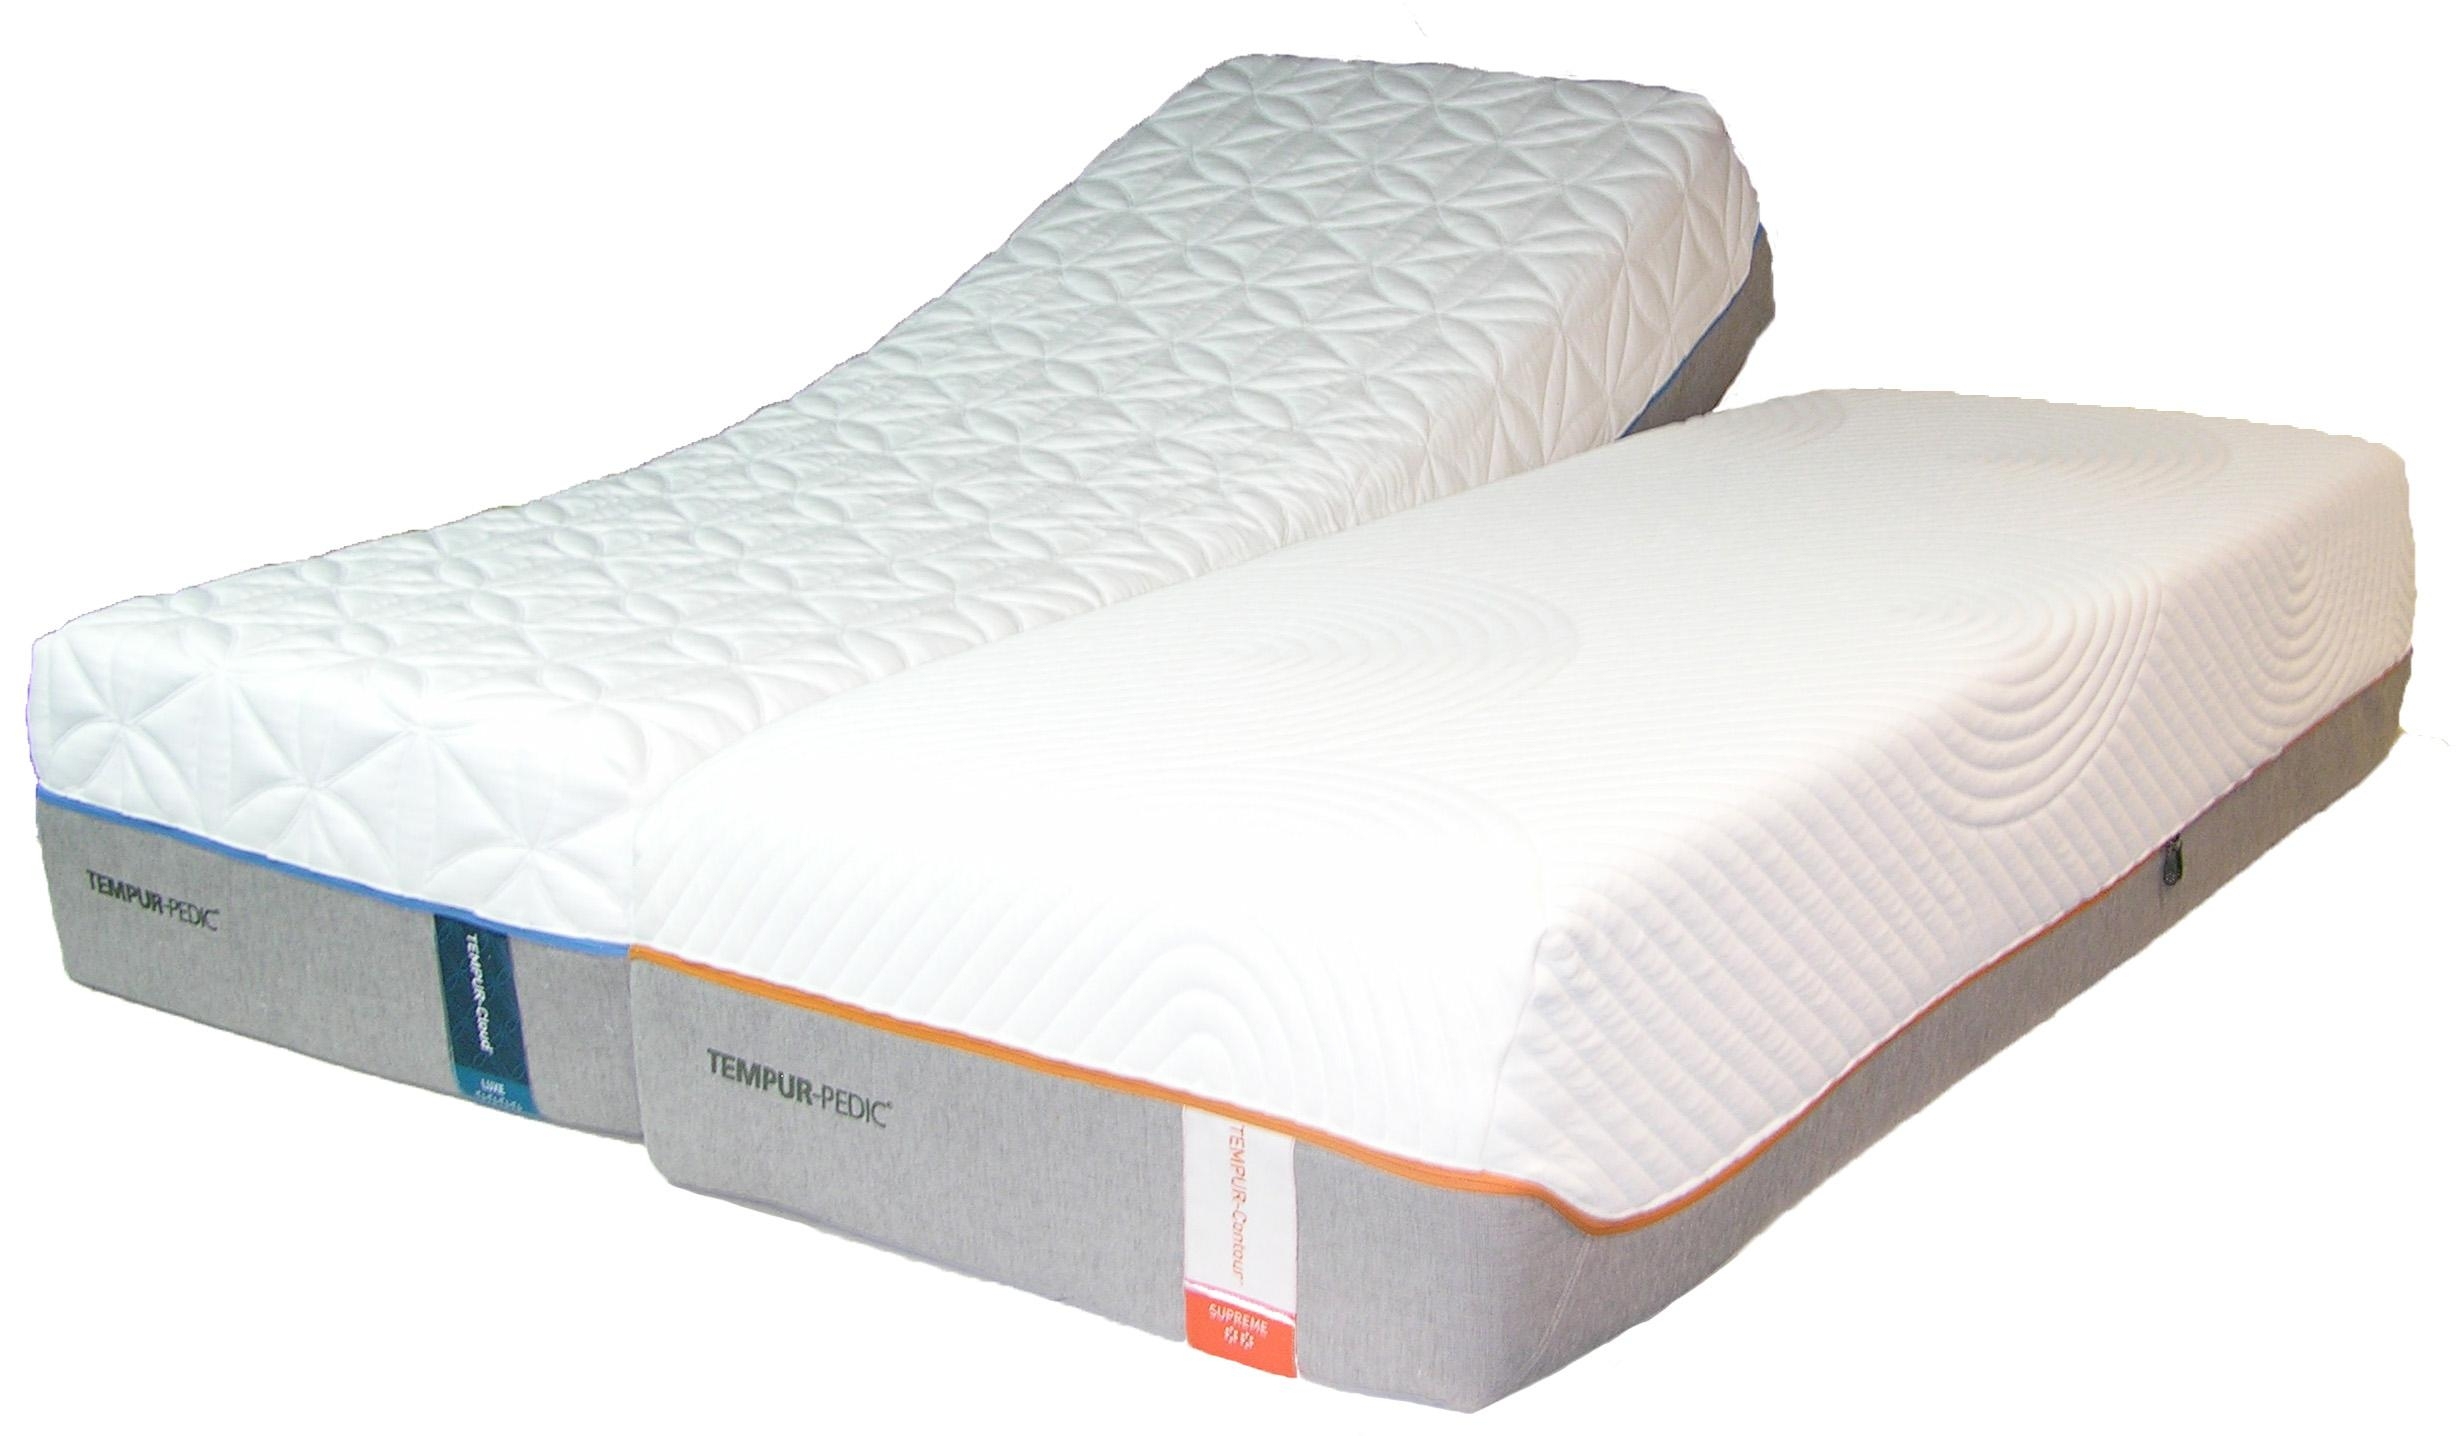 Split Queen Mattress Sets | Vertigino Mattress Throughout Queen Mattress Sets (Image 20 of 20)